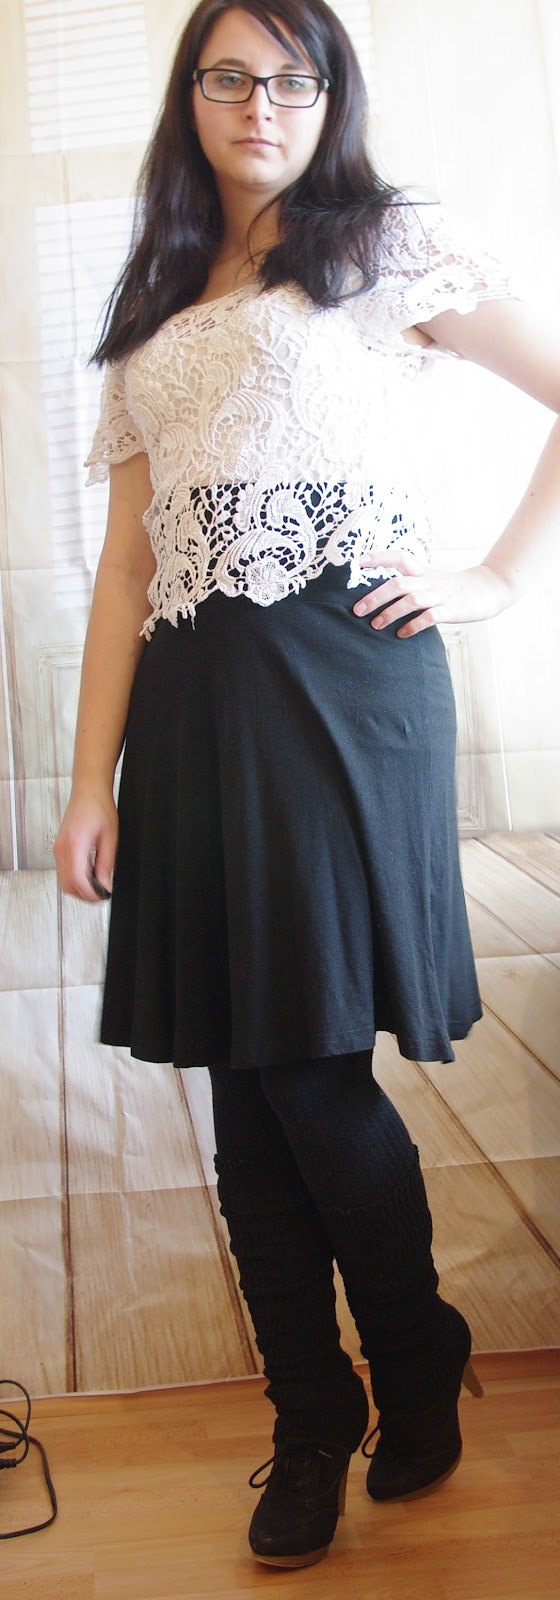 Outfit Black Skirt and Crochet Top